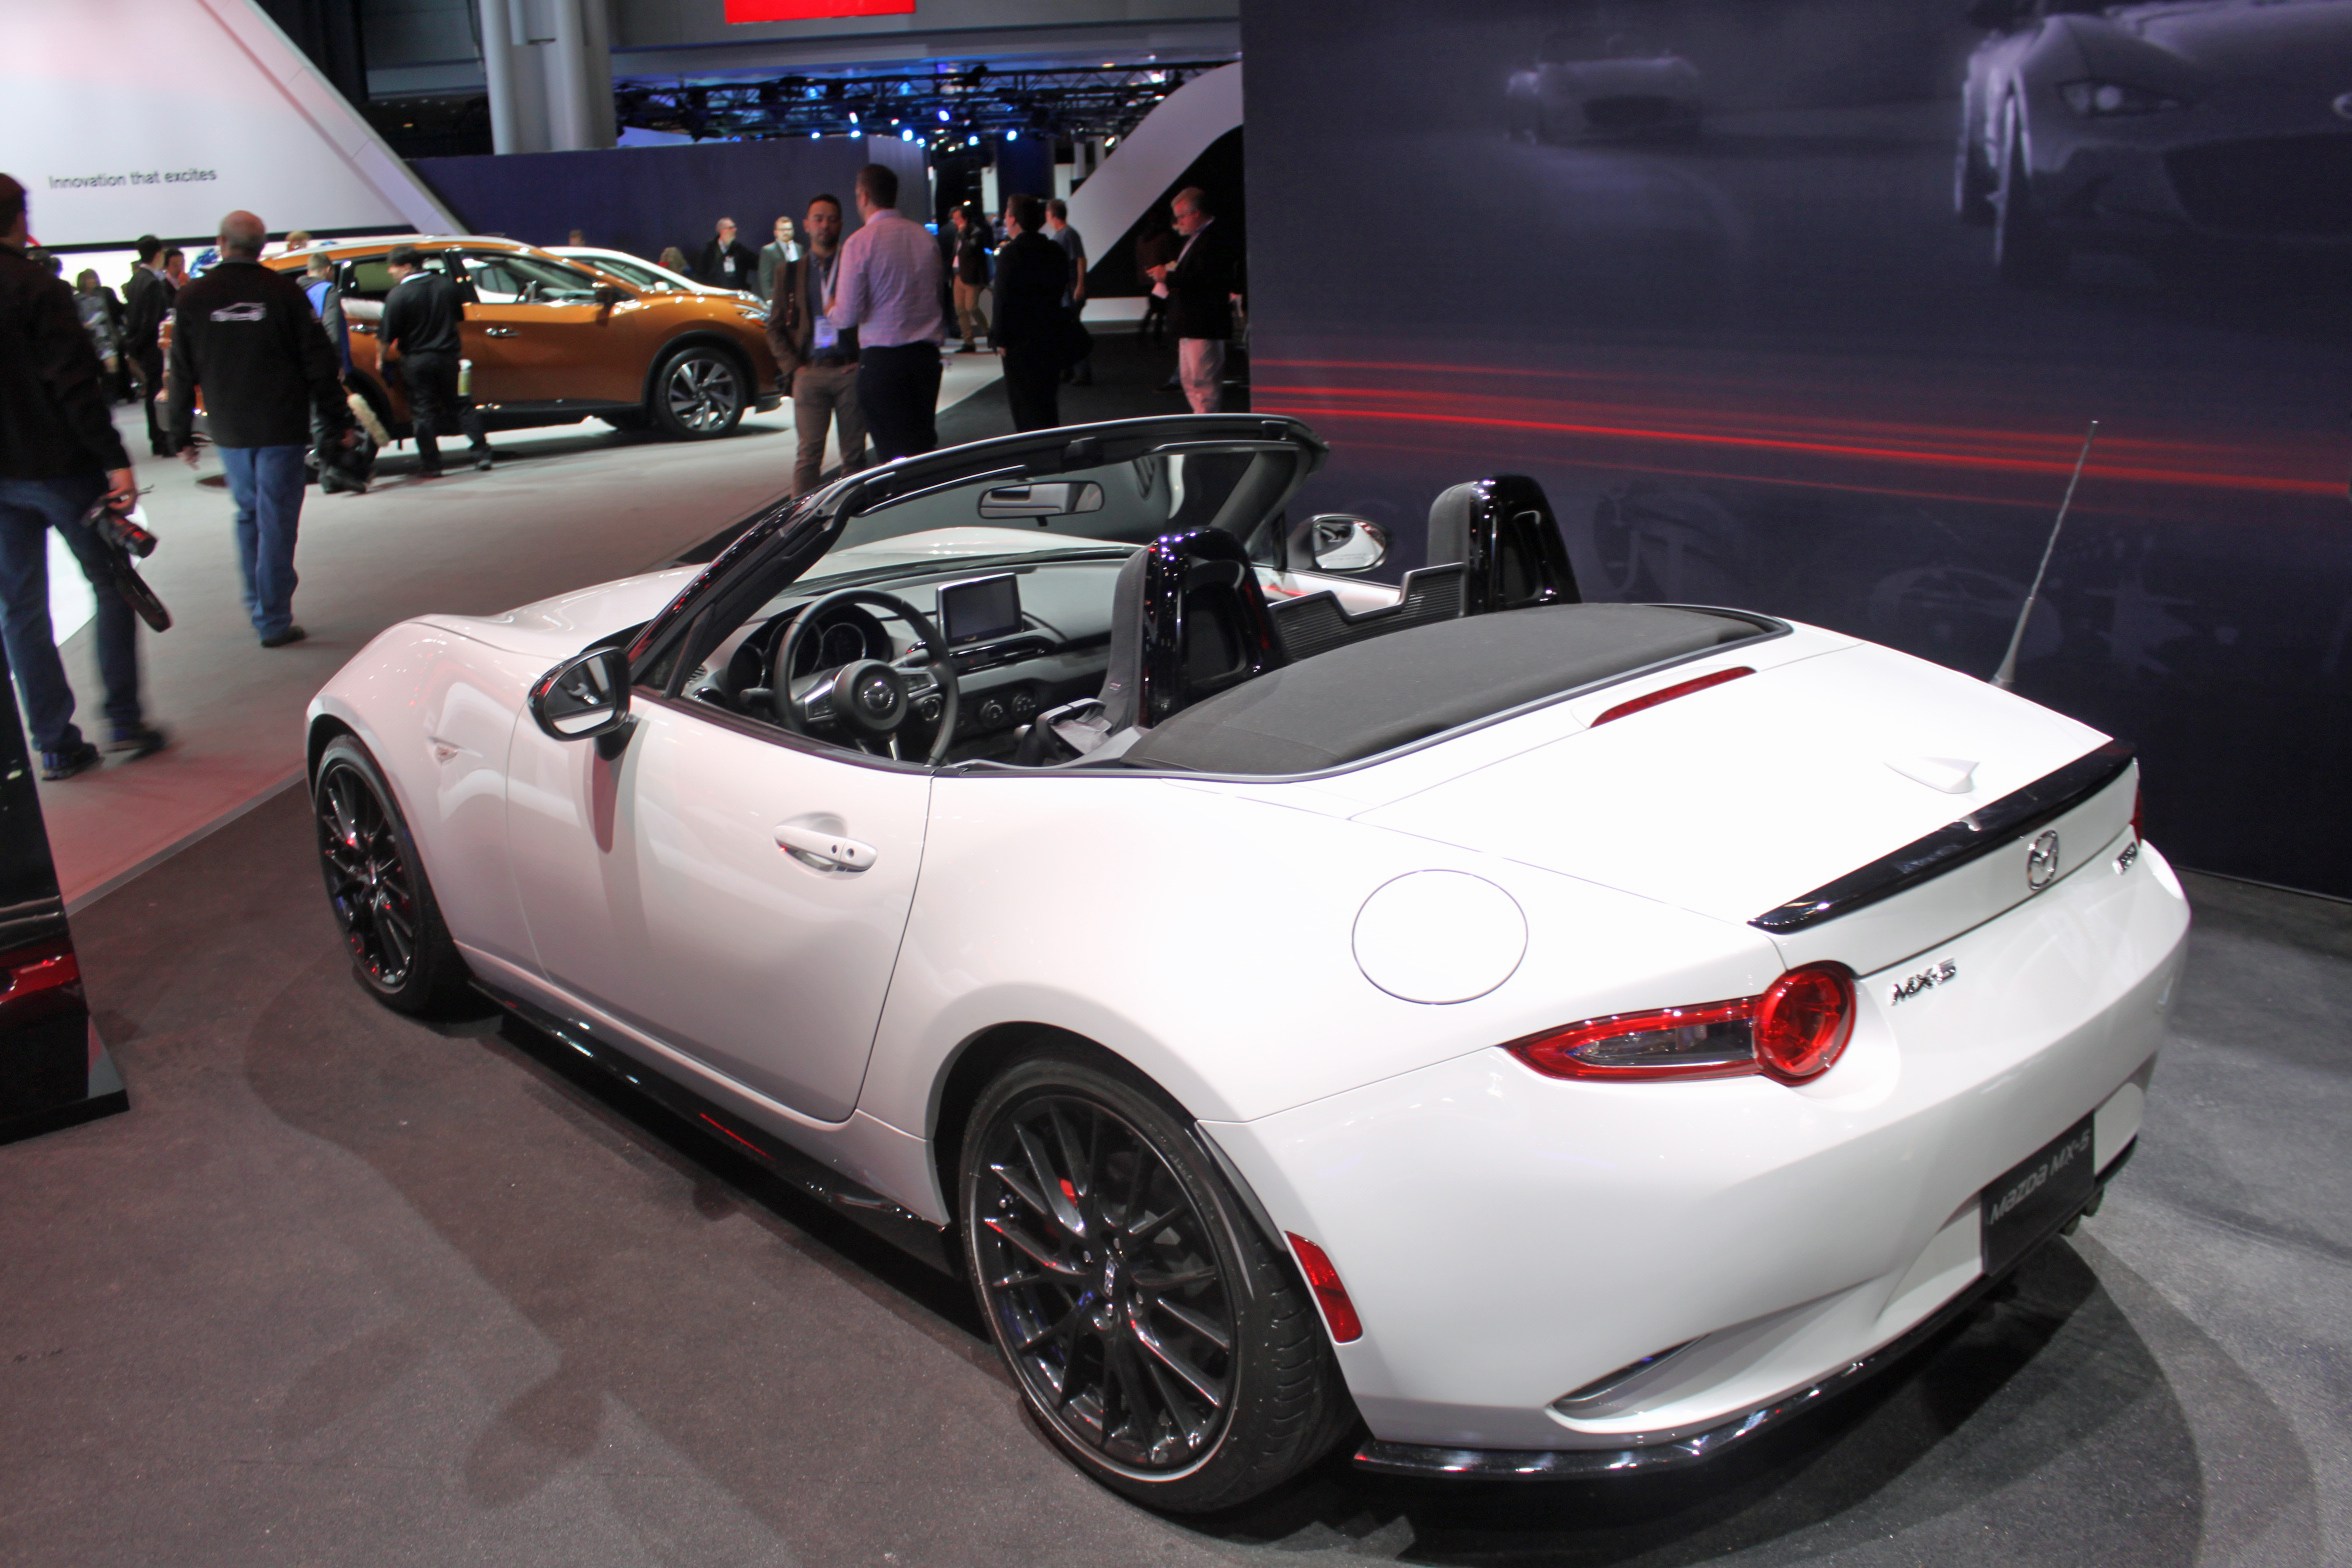 http://www.autoguide.com/blog/wp-content/gallery/2016-mazda-mx-5-club-live-photos/2016-Mazda-MX-5-Live-4.jpg